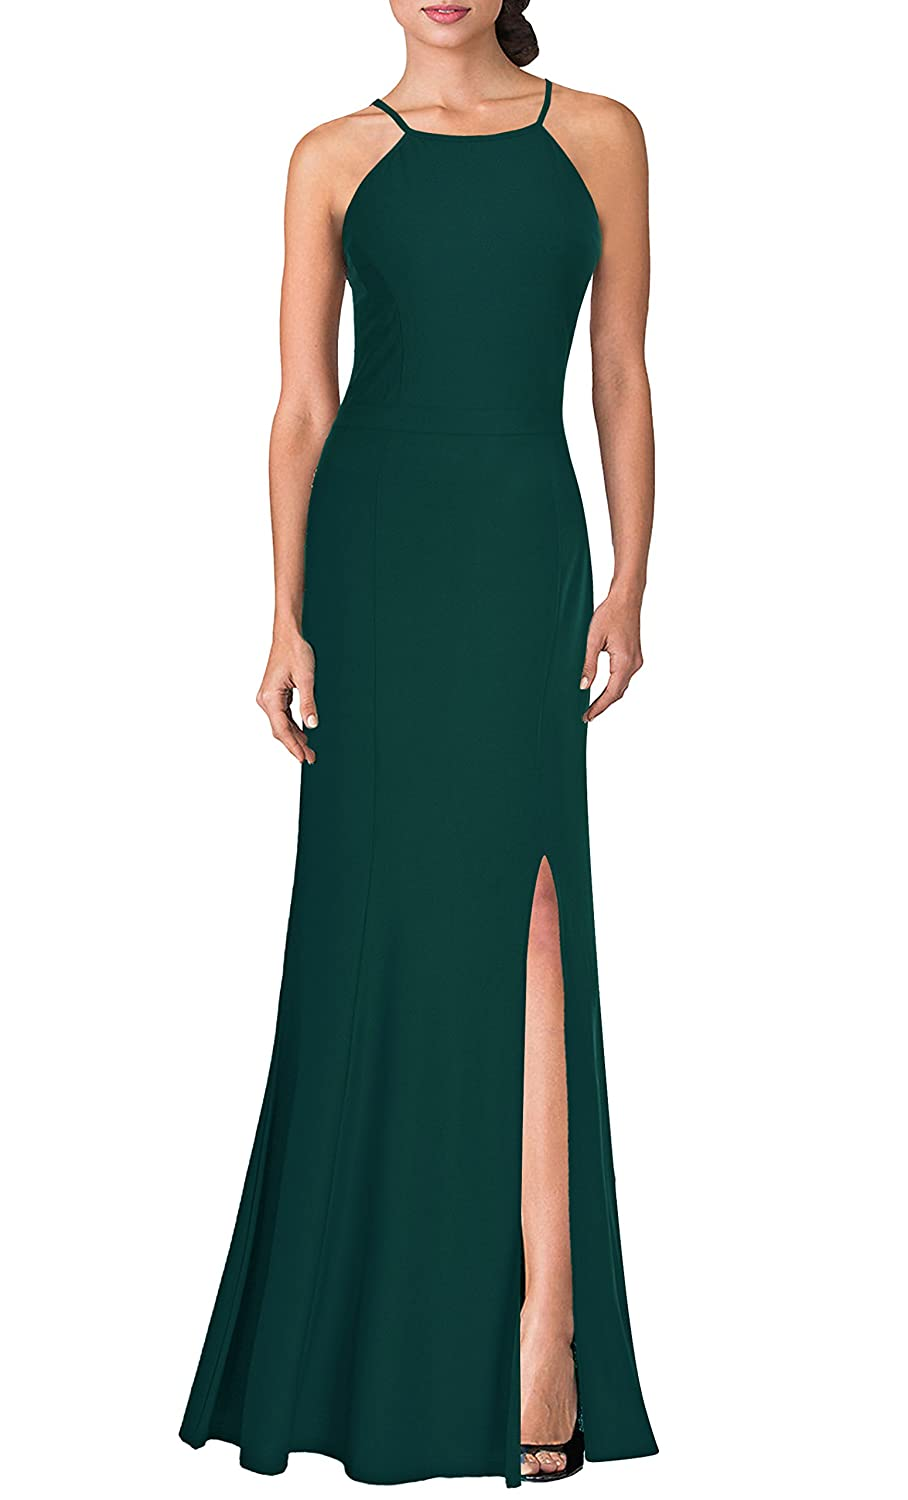 Green Mmondschein Women's Vintage Halter Wedding Bridesmaid Evening Long Dress